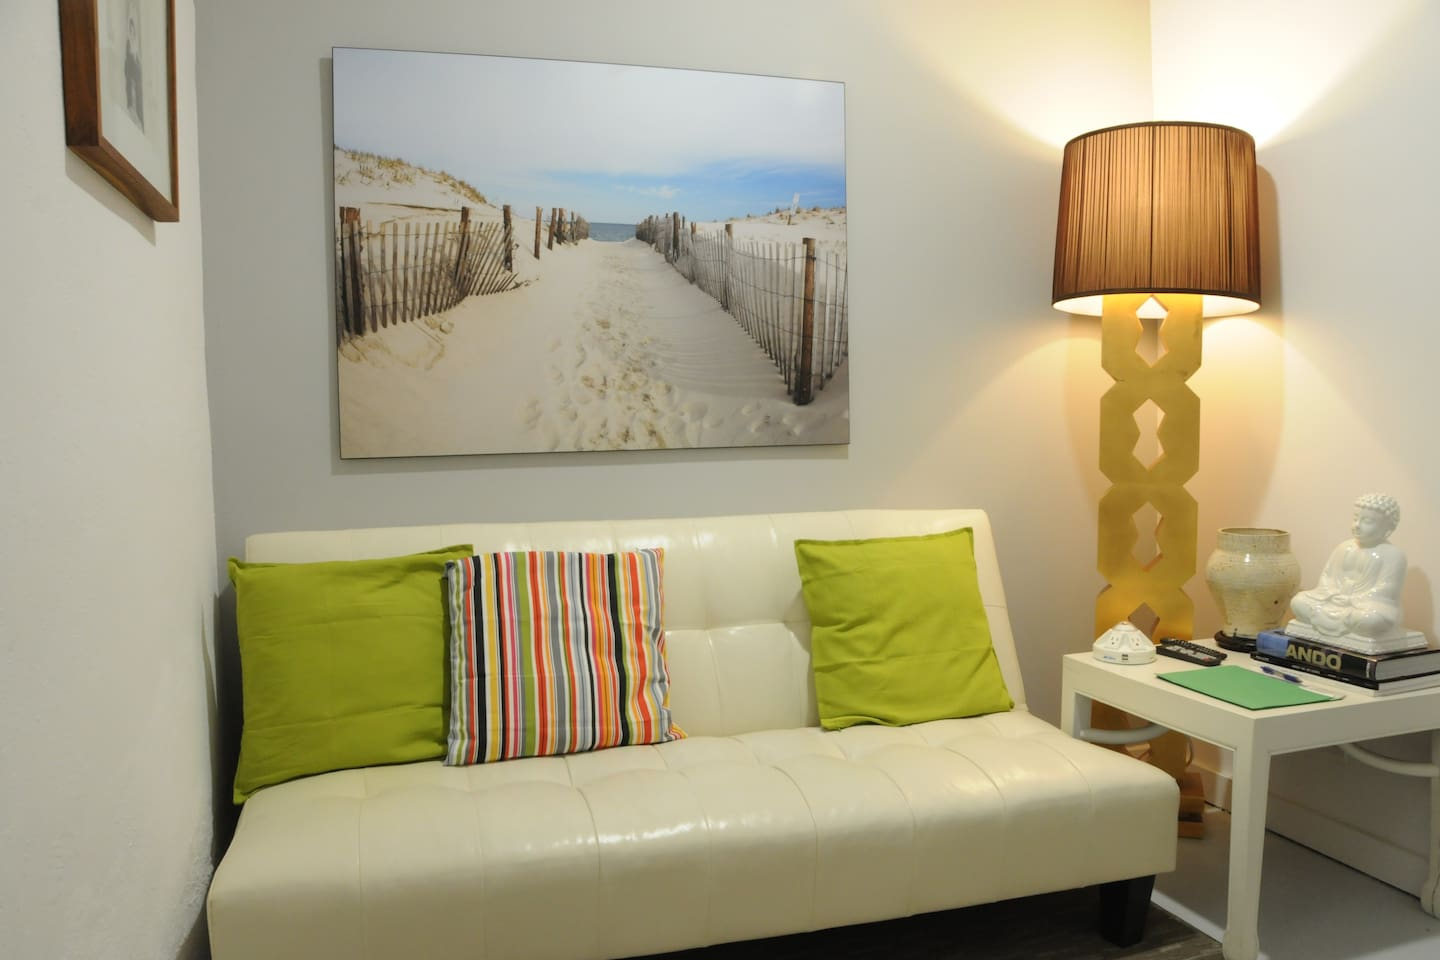 Small living area with cable TV